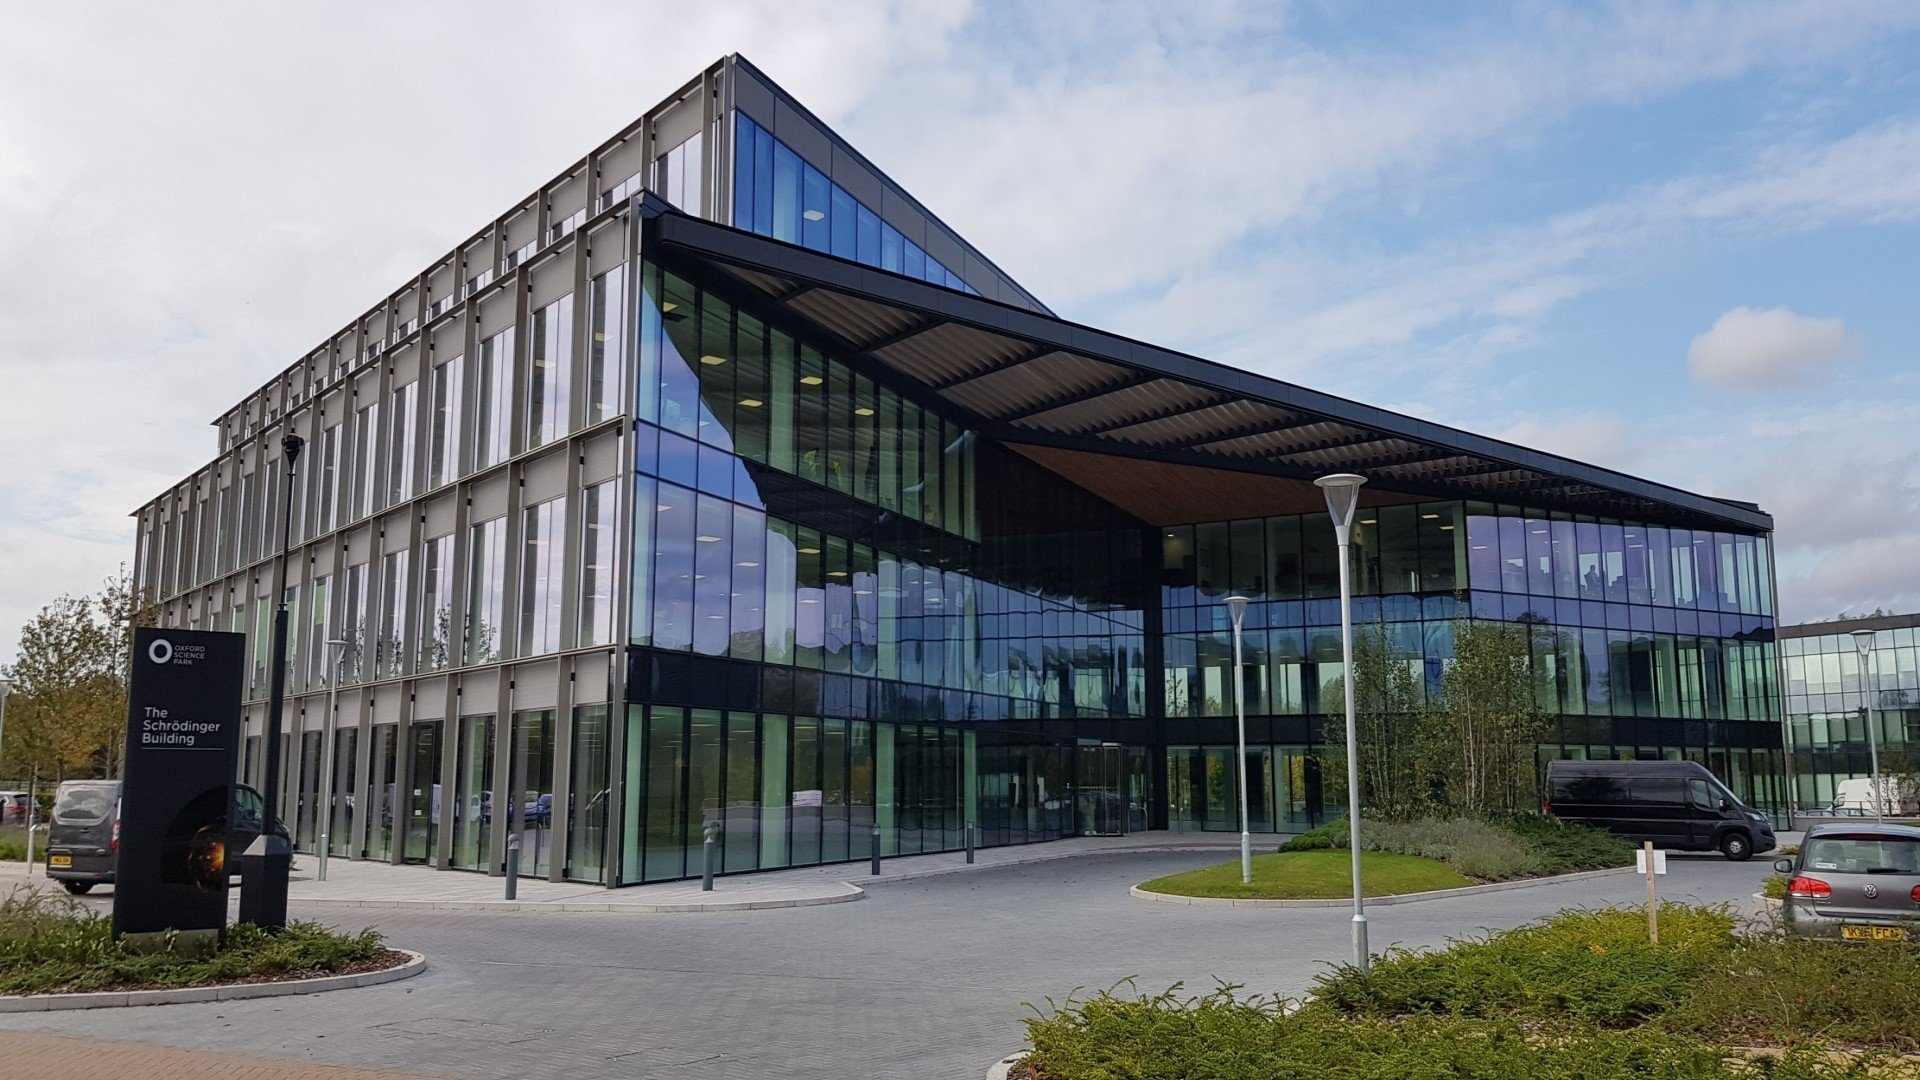 Orbit Discovery raises $7.6m to accelerate growth in peptide discovery business. Image: The Schrödinger Building at The Oxford Science Park